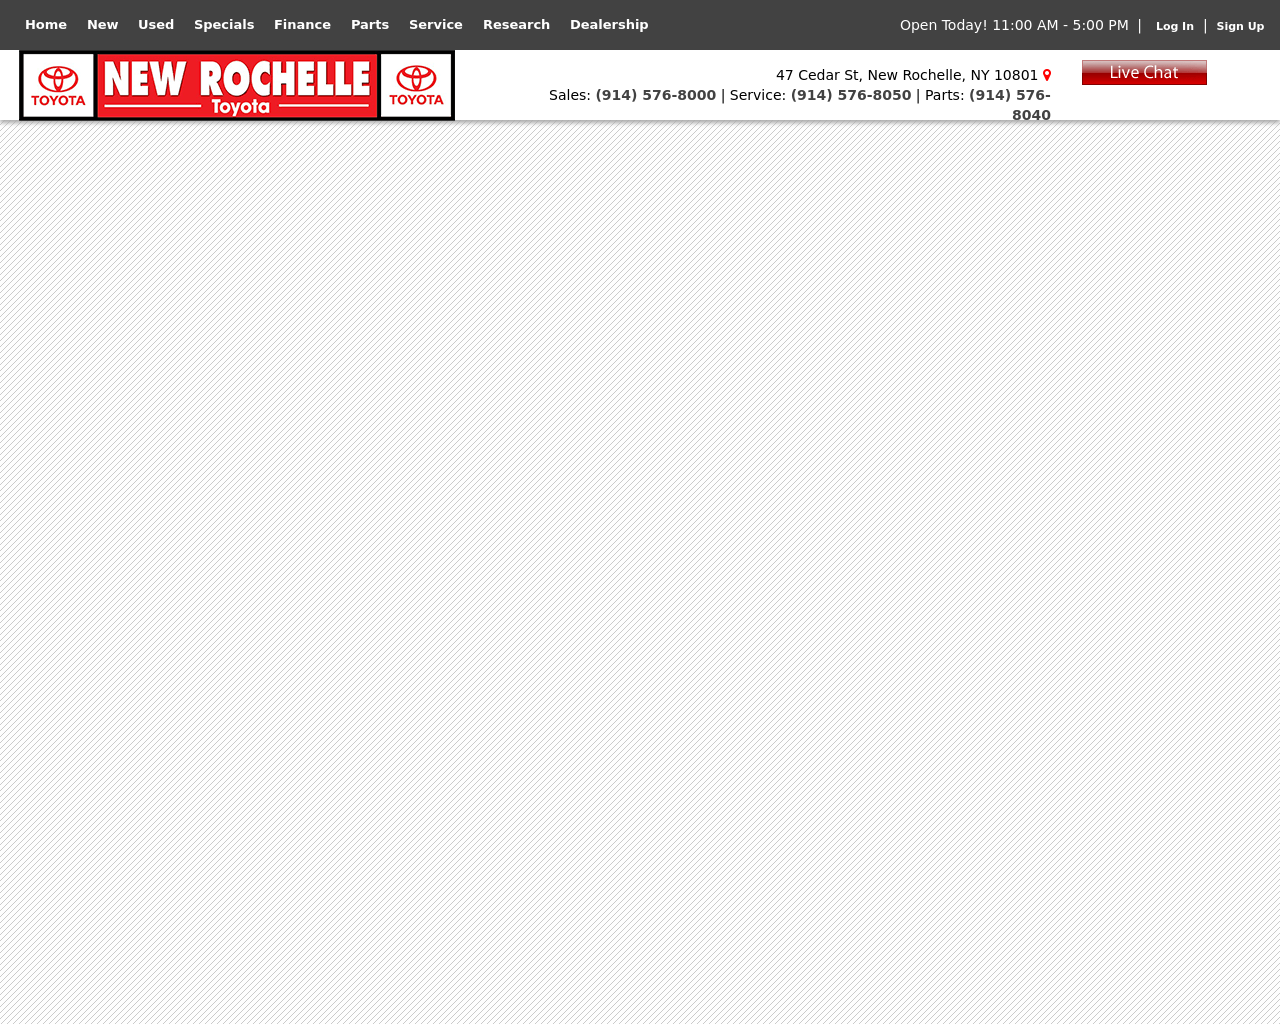 New Rochelle Toyota Advertising Reviews Pricing